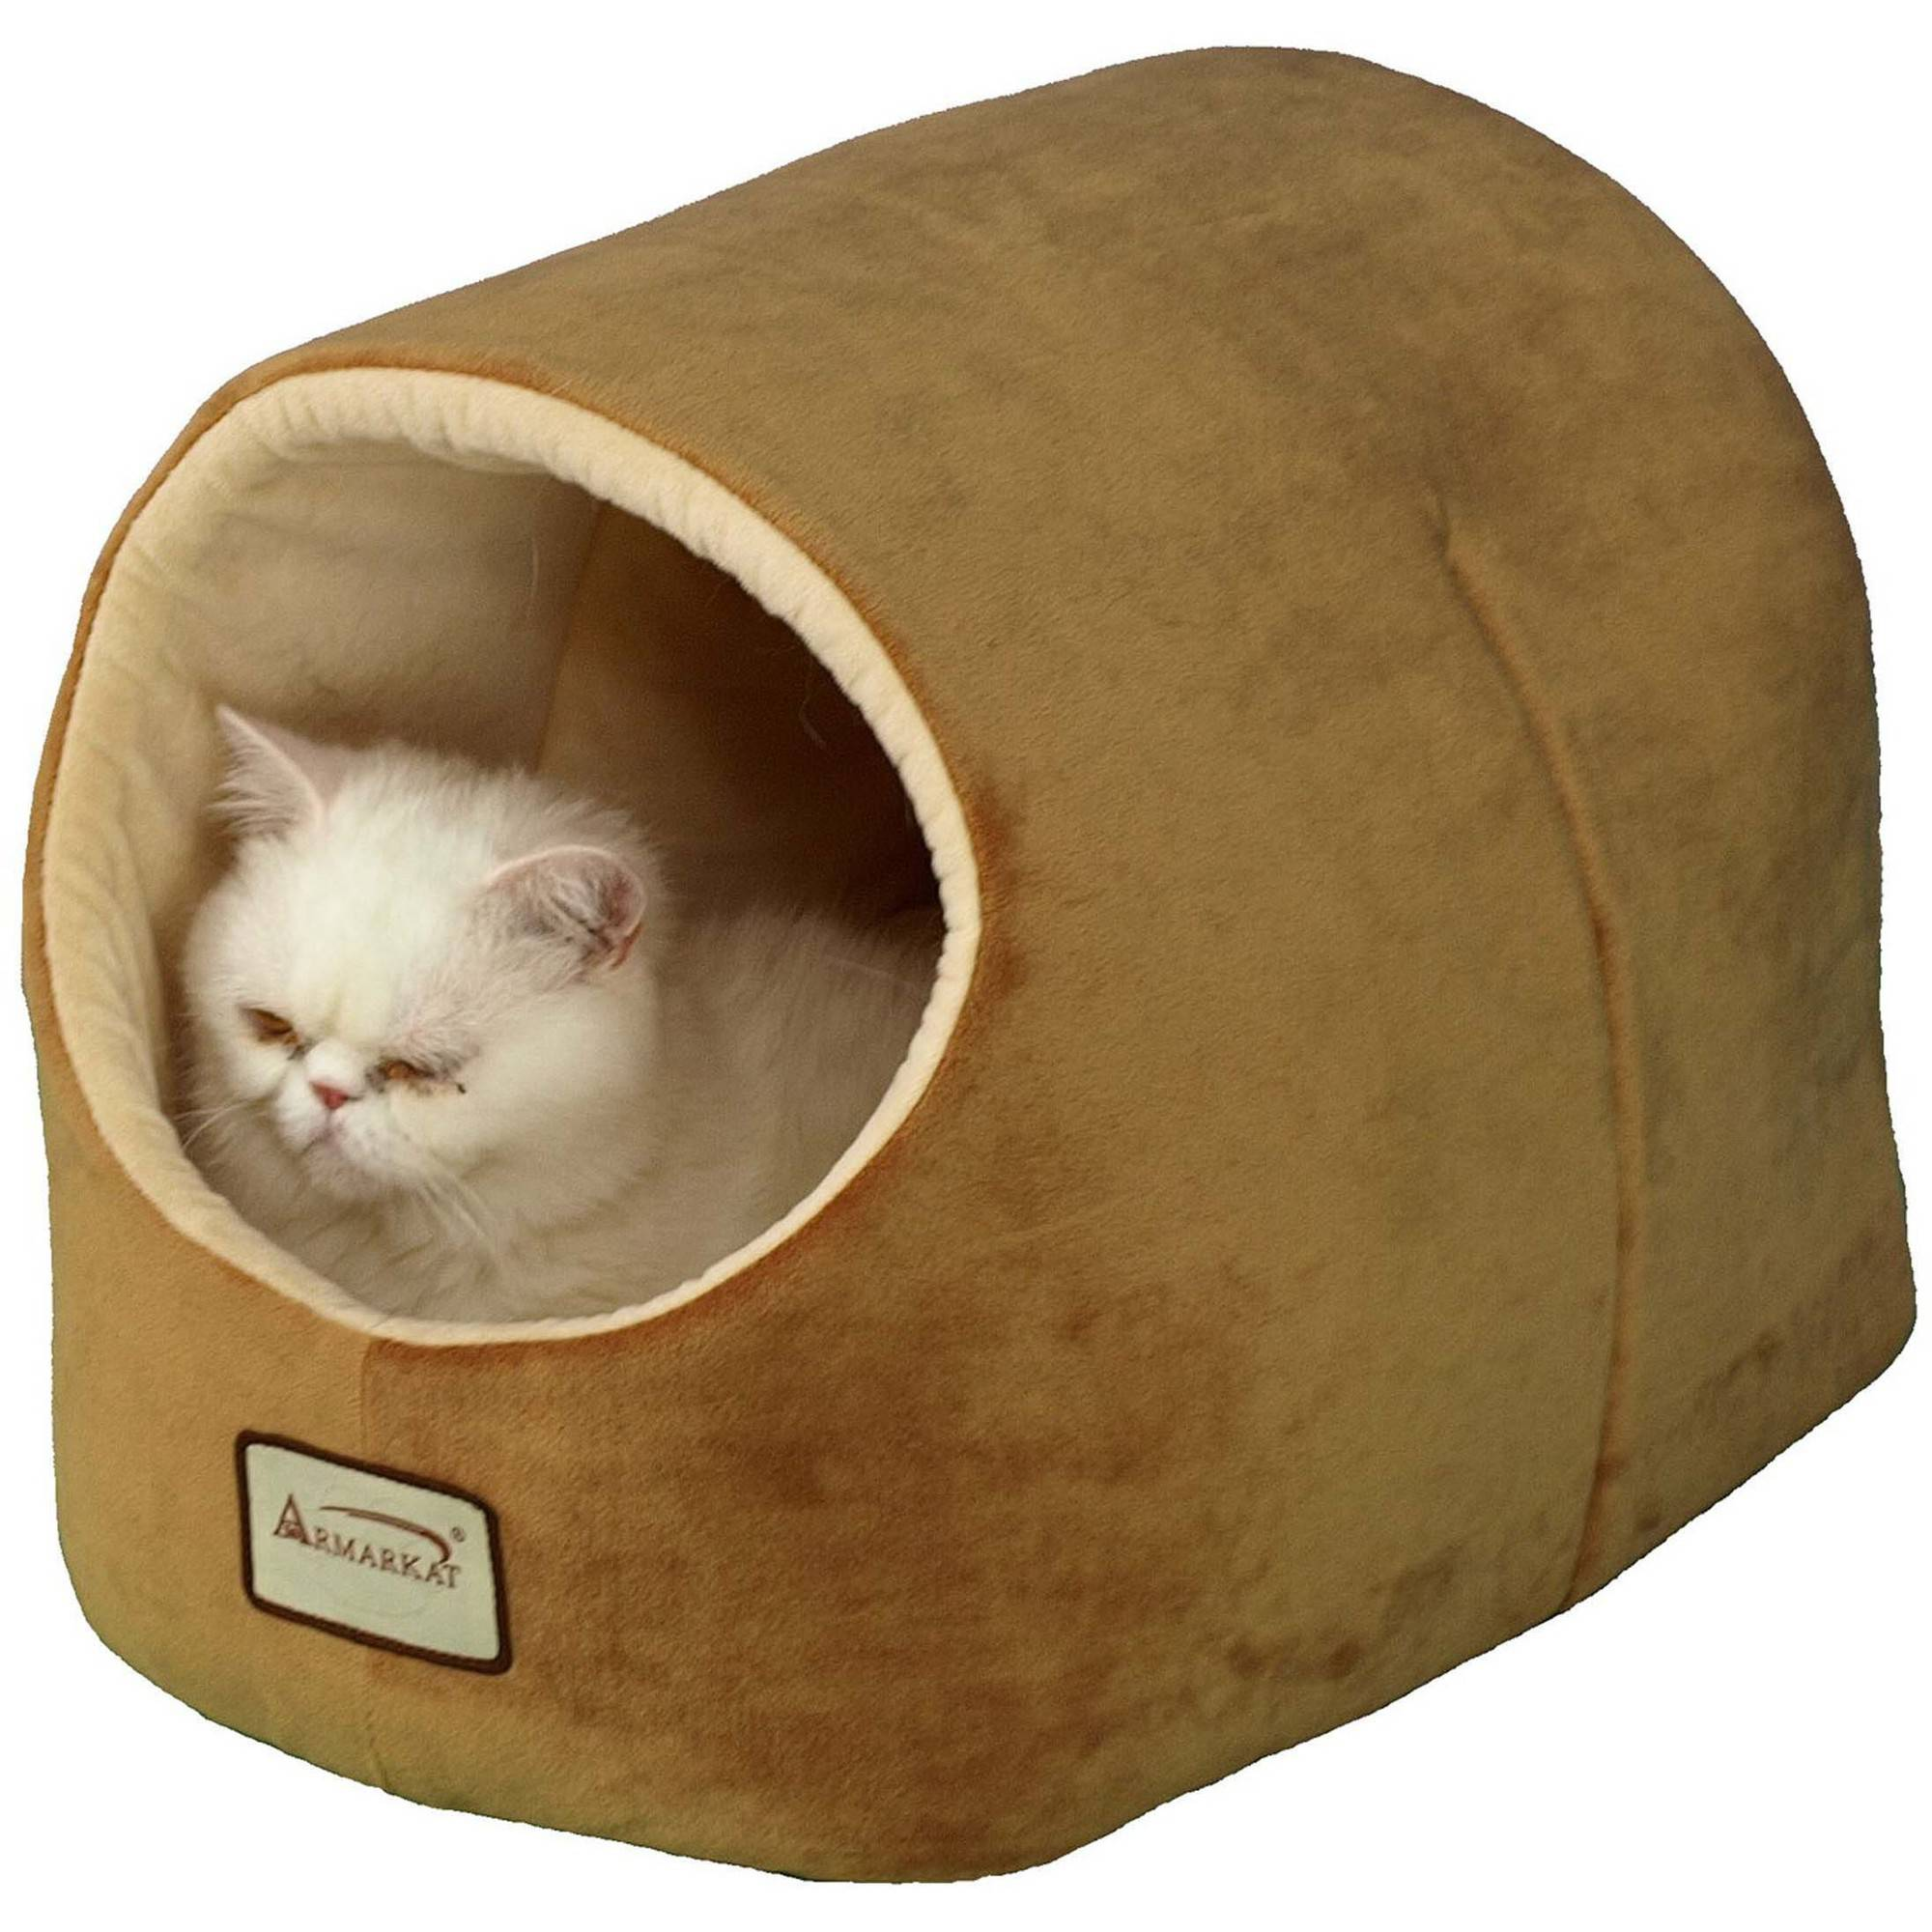 Armarkat Cat Bed, 18-Inch Long, Brown, C11CZS/MH